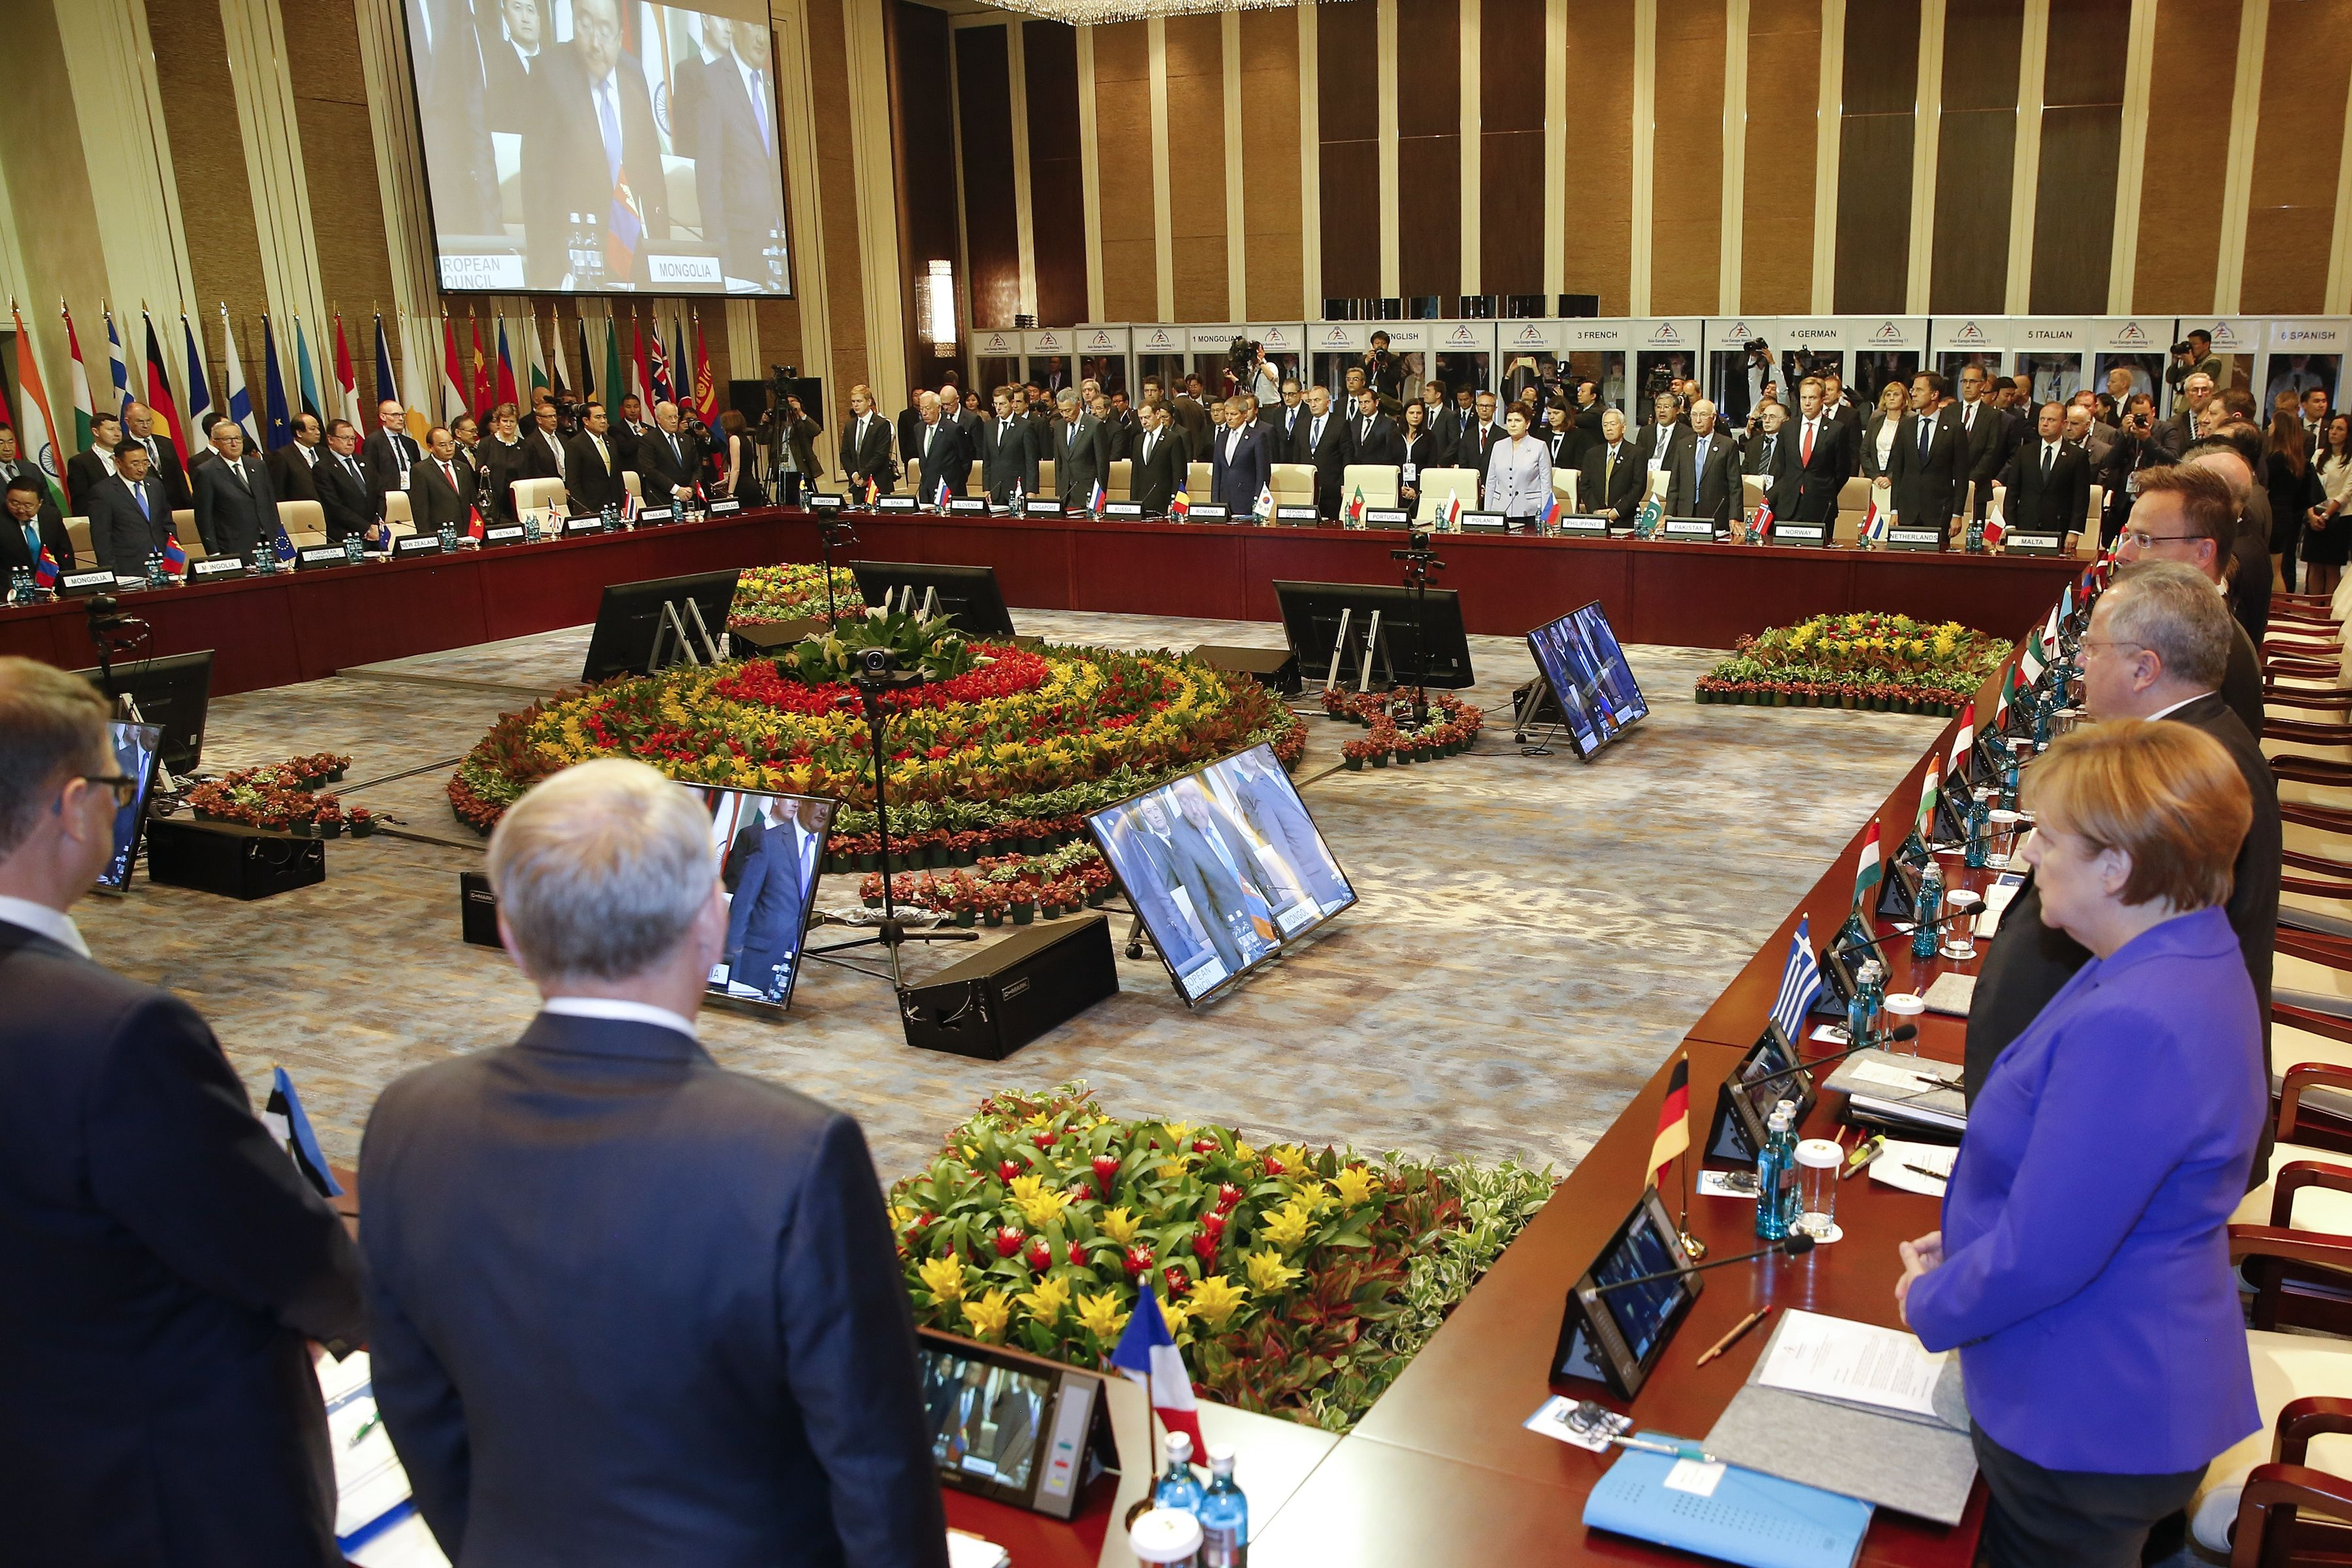 Leaders stand for a minute of silence for the victims of a deadly attack in the French city of Nice, before the opening session of the 11th Asia-Europe Meeting (ASEM) Summit in the Mongolian capital of Ulan Bator on July 15, 2016.